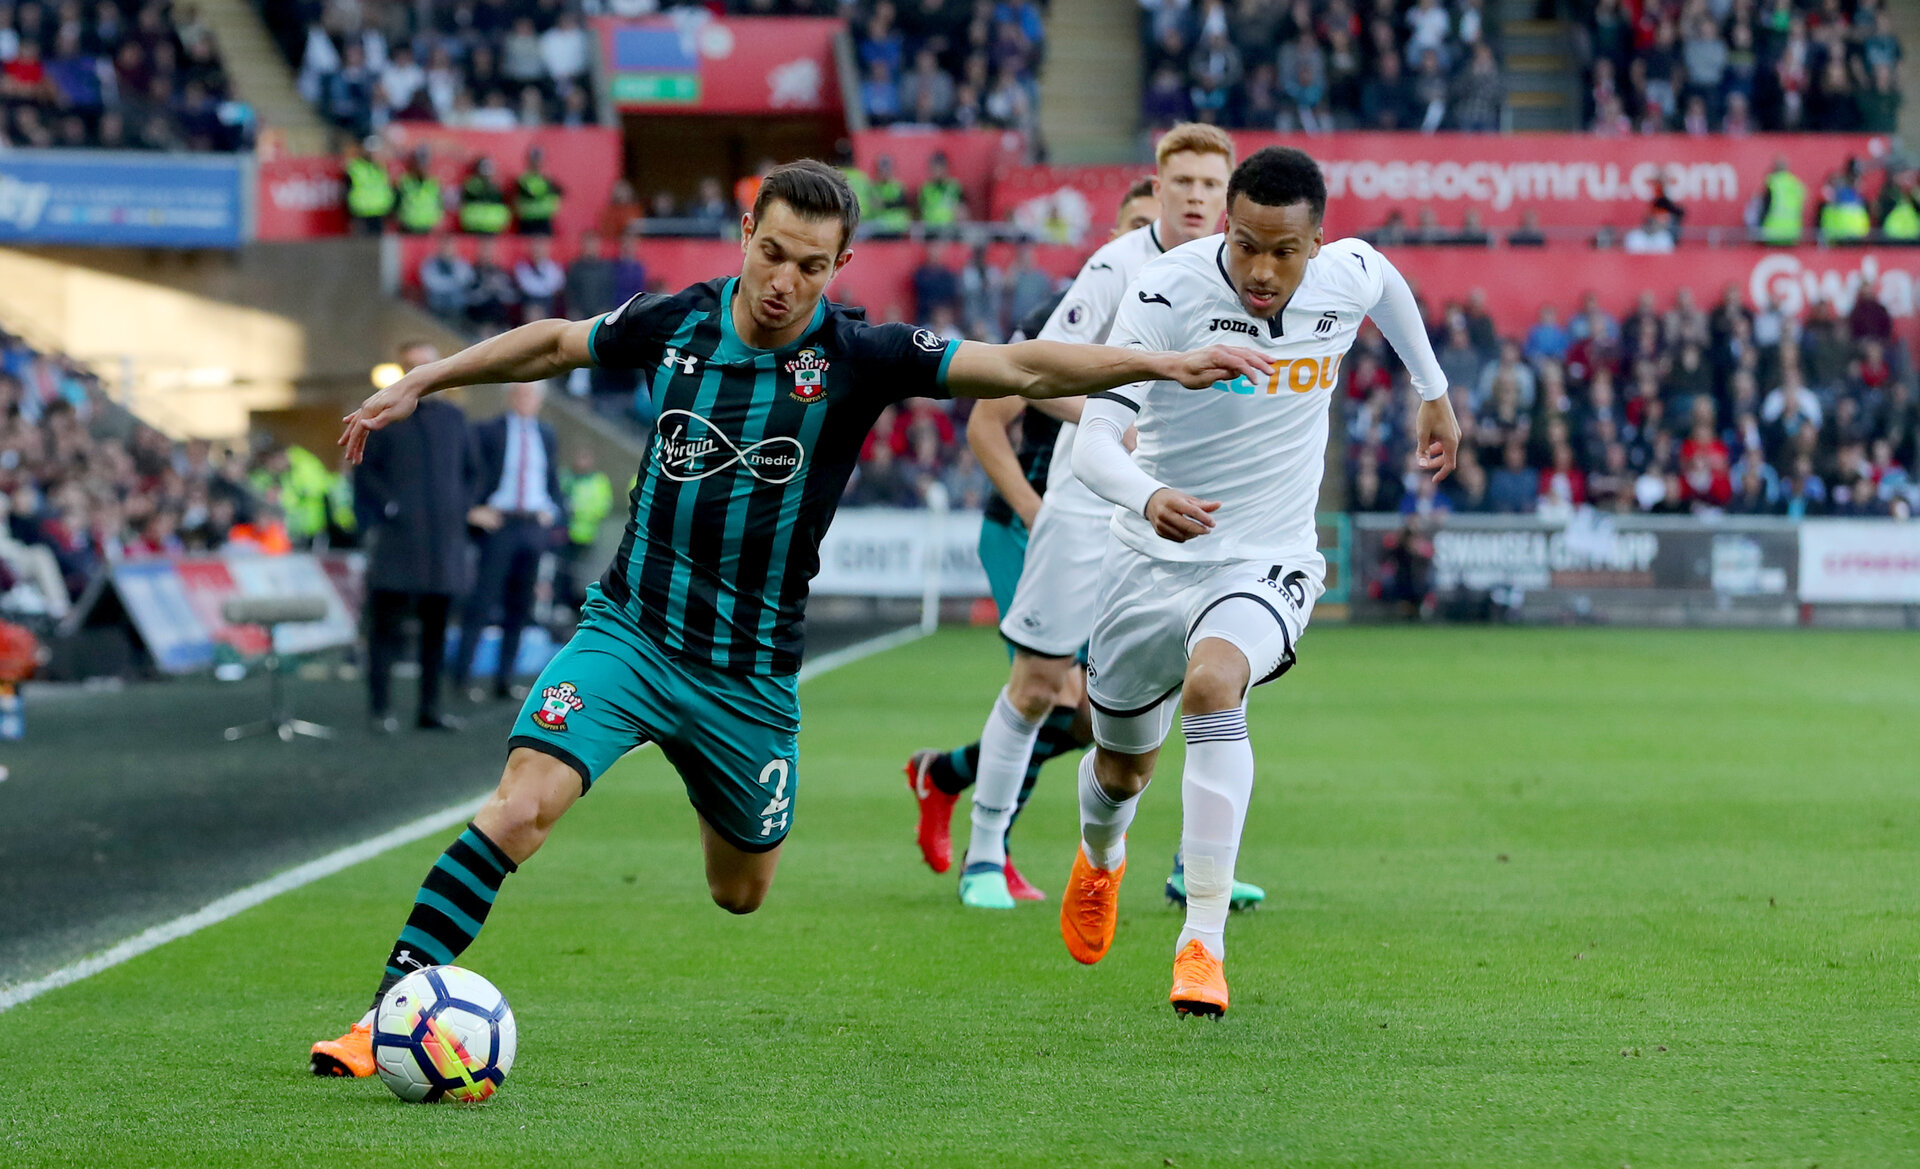 SWANSEA, WALES - MAY 08: Cedric(L) of Southampton and Martin Olsson(R) of swansea during the Premier League match between Swansea City and Southampton at Liberty Stadium on May 8, 2018 in Swansea, Wales. (Photo by Matt Watson/Southampton FC via Getty Images)